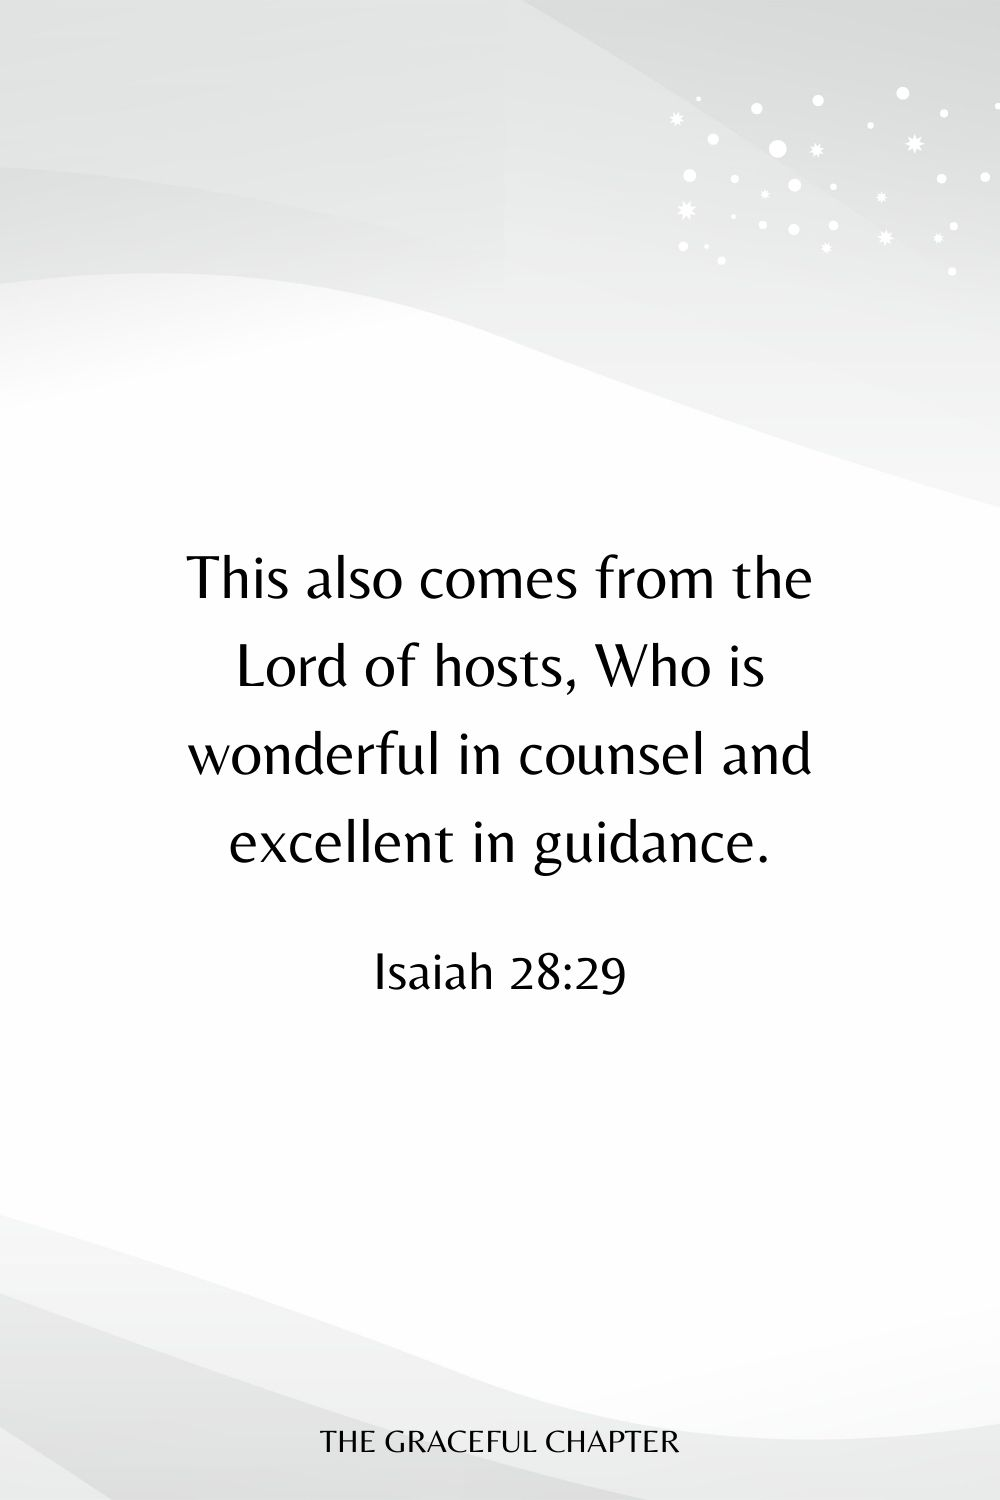 This also comes from the Lord of hosts, Who is wonderful in counsel and excellent in guidance. Isaiah 28:29